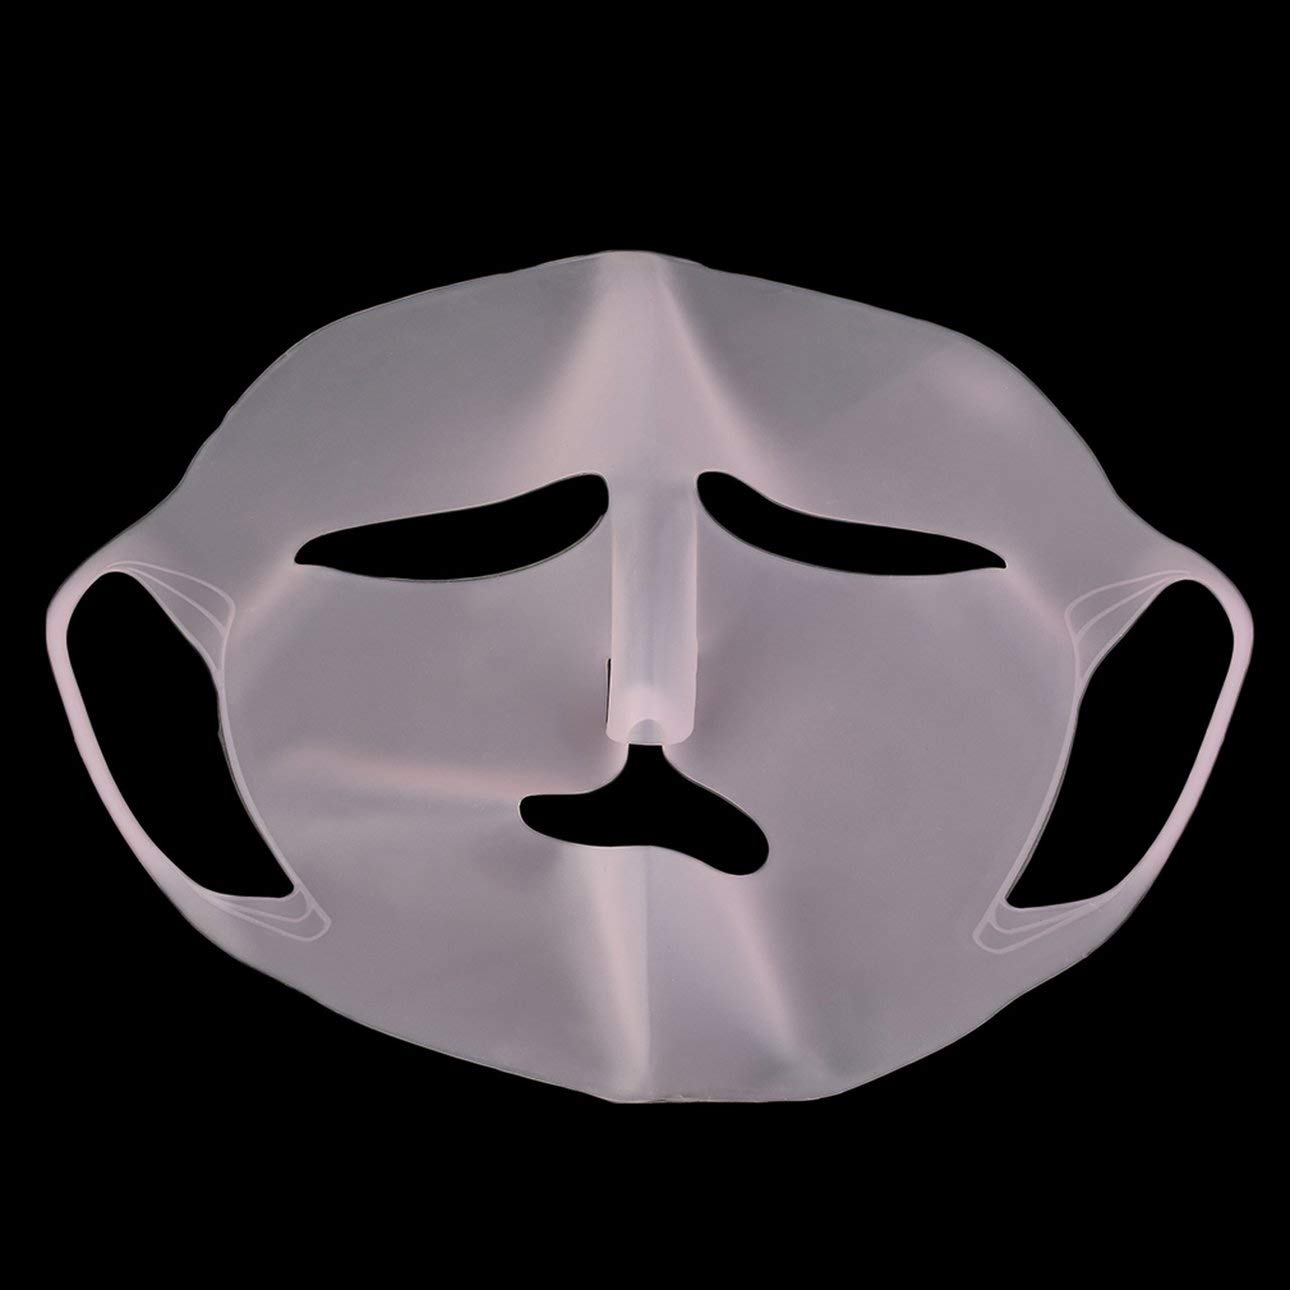 Liobaba Mask Cover, Reusable Silicone Facial Mask Cover, Ear Hook Mask Cover for Sheet Prevent Evaporation